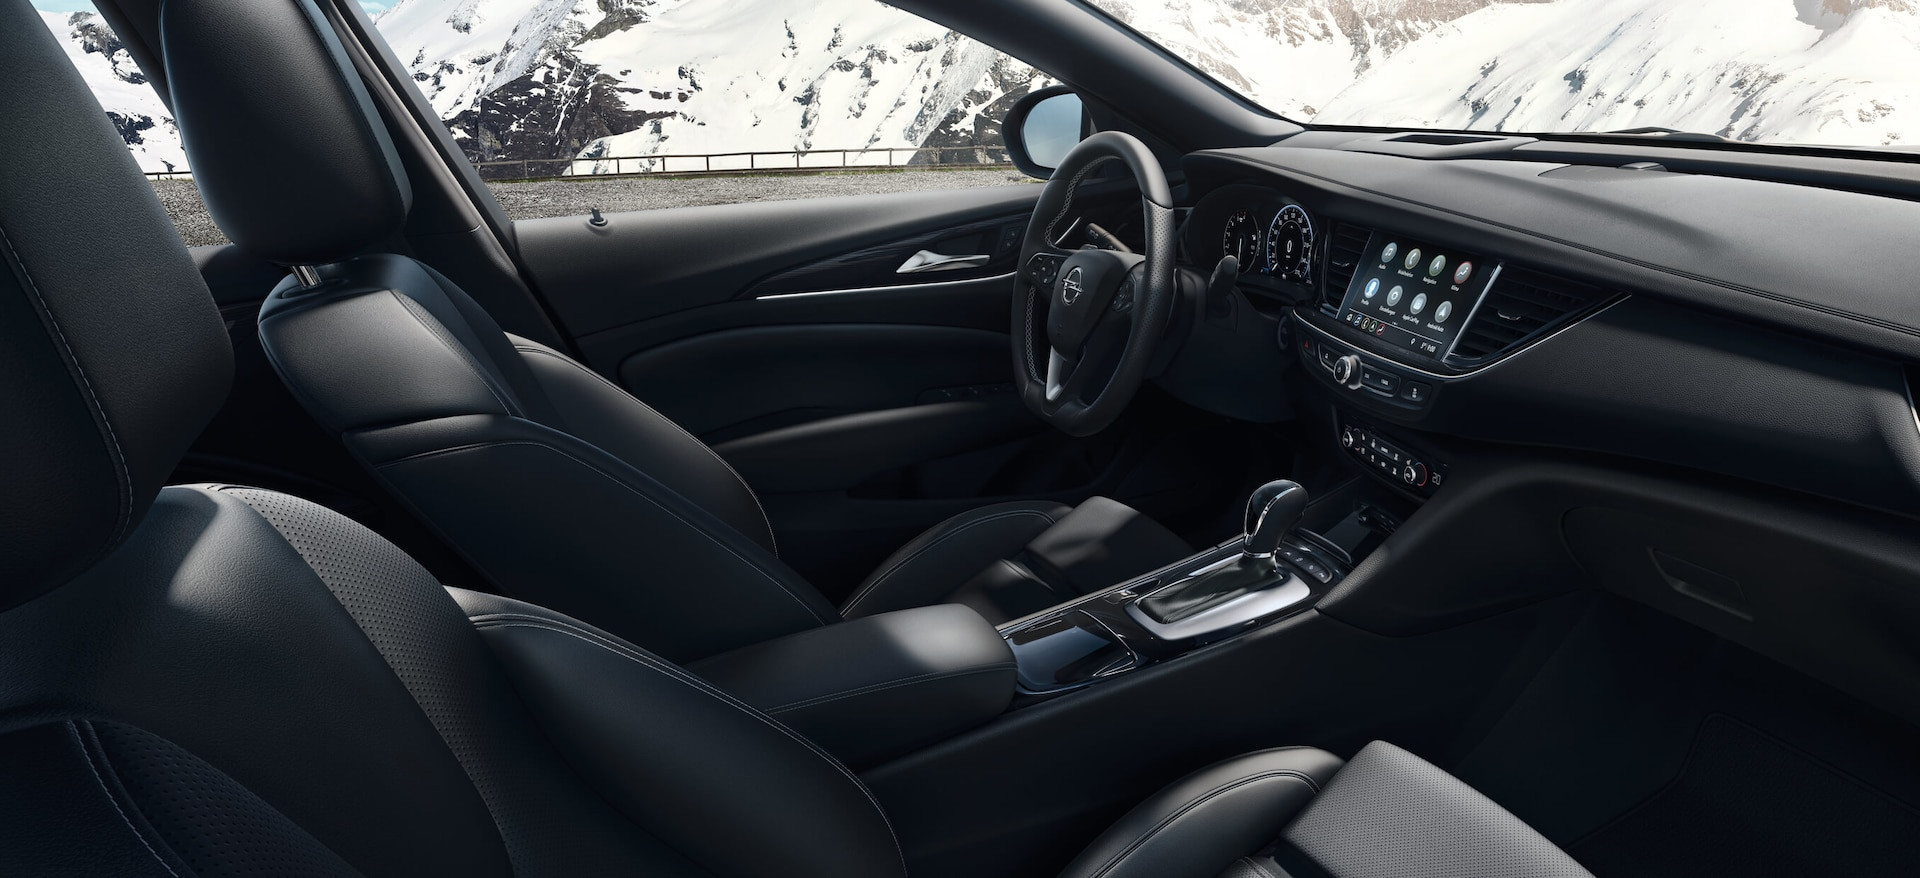 Opel_Insignia-CT_Design_Interior_21x9_in